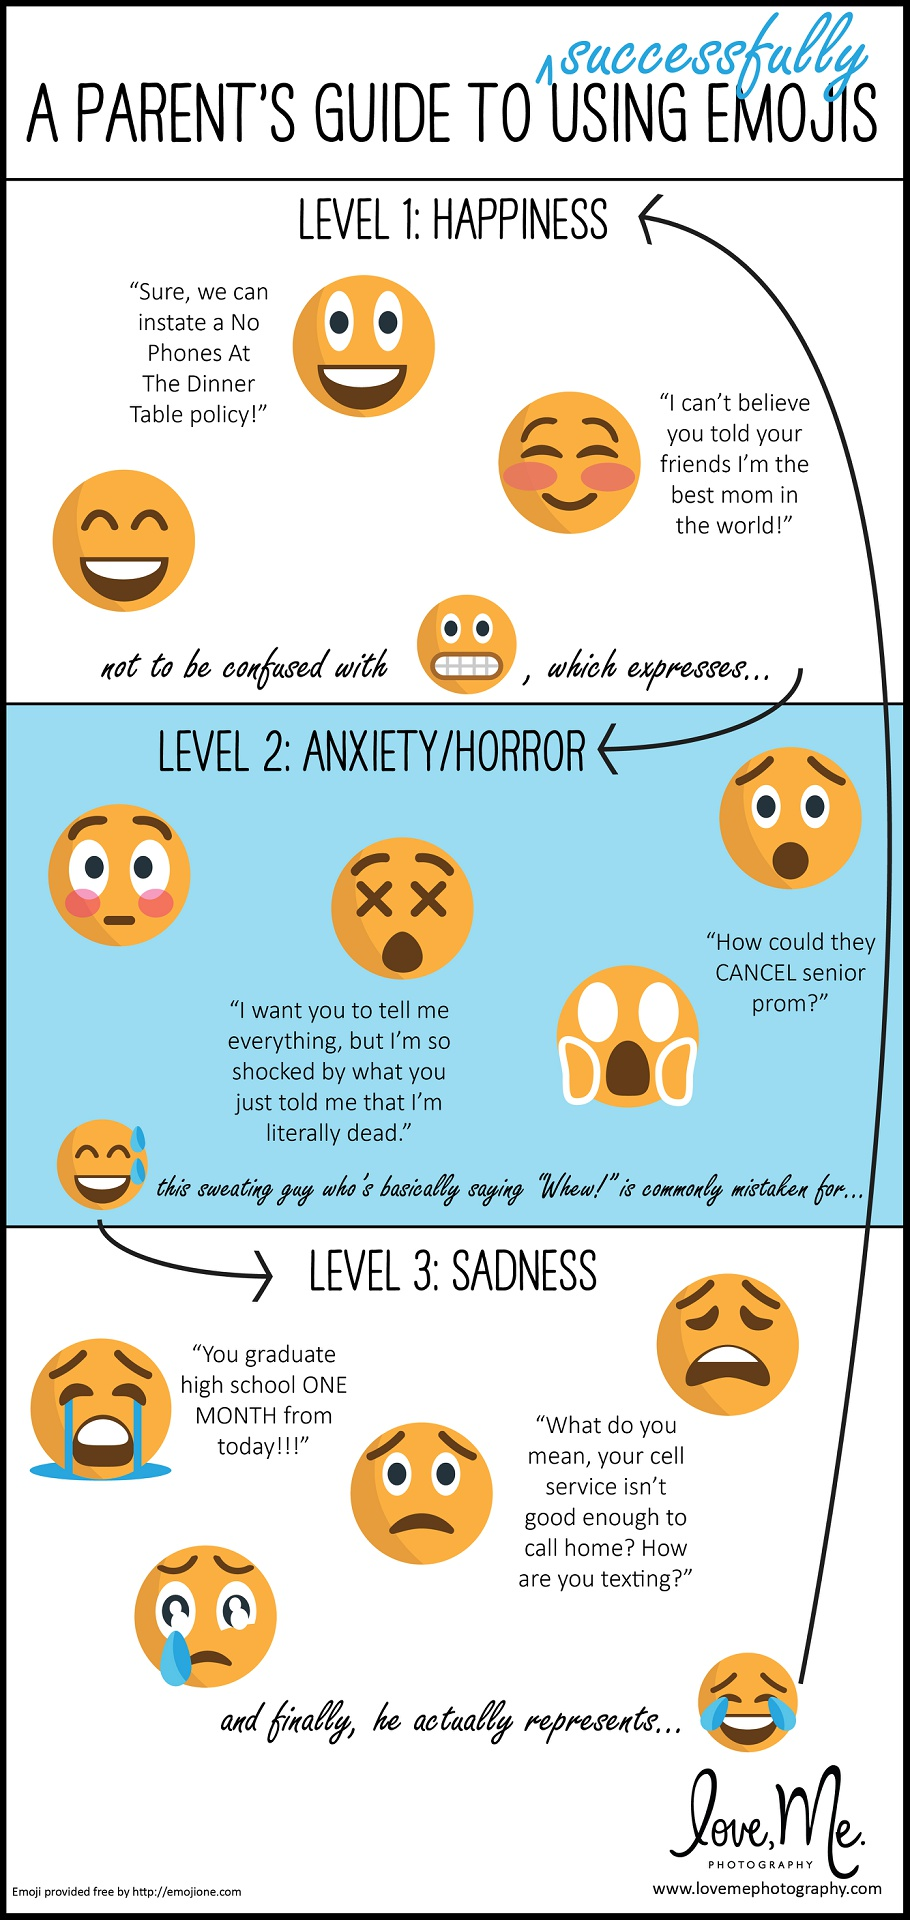 Parents Guide to Emojis